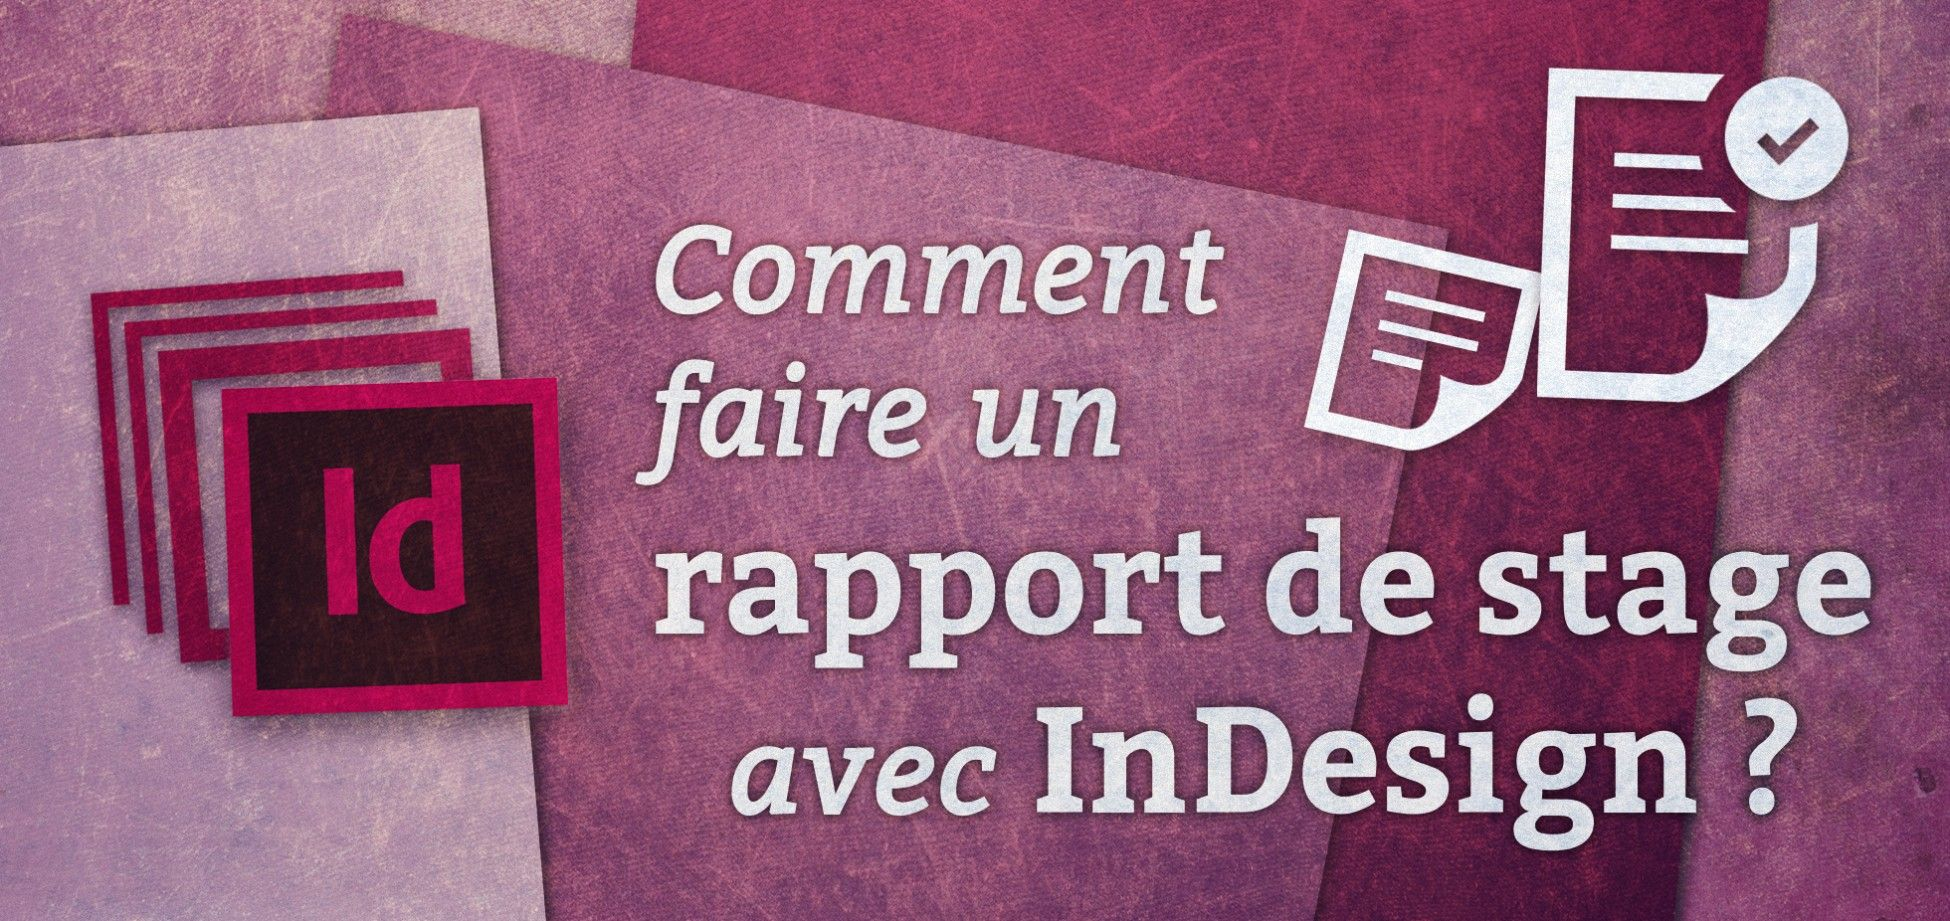 Comment Faire Un Rapport De Stage Avec Indesign Comment